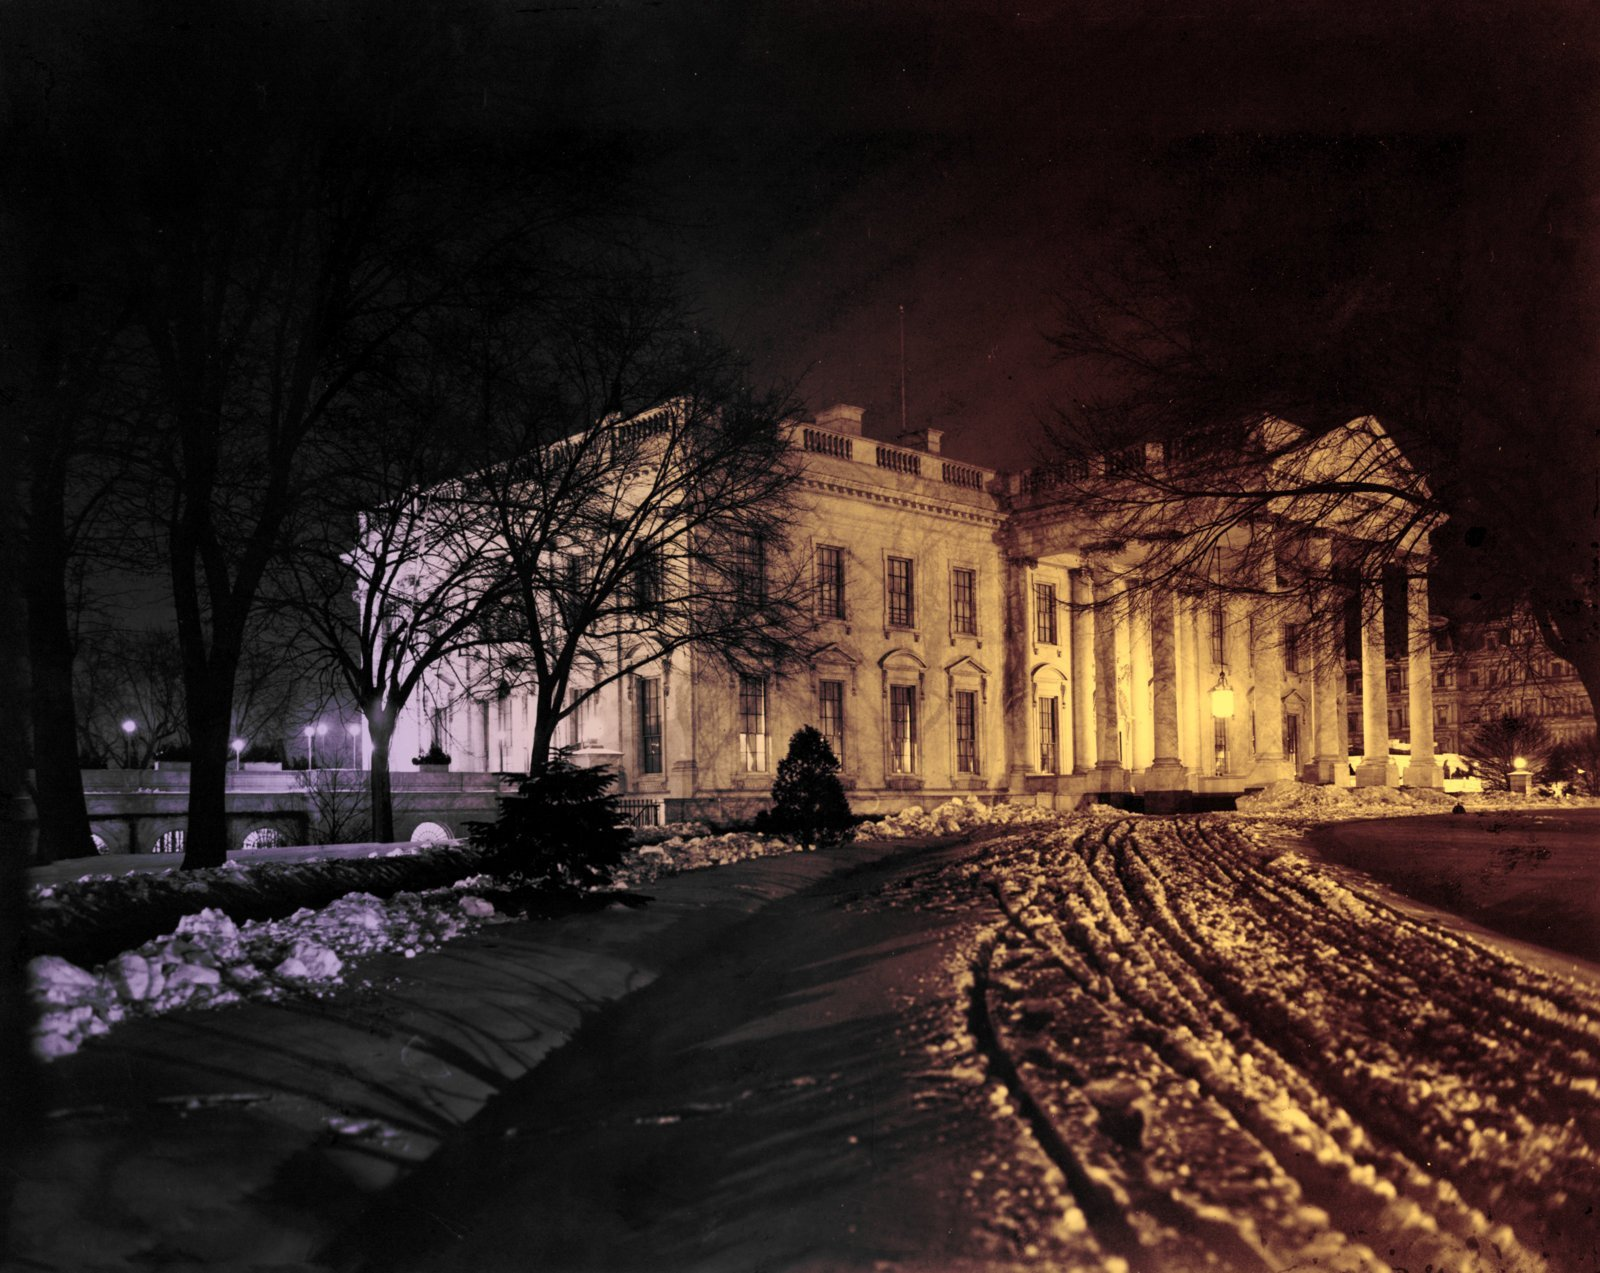 White House, exterior 1907 view at night, under snow (colorized)